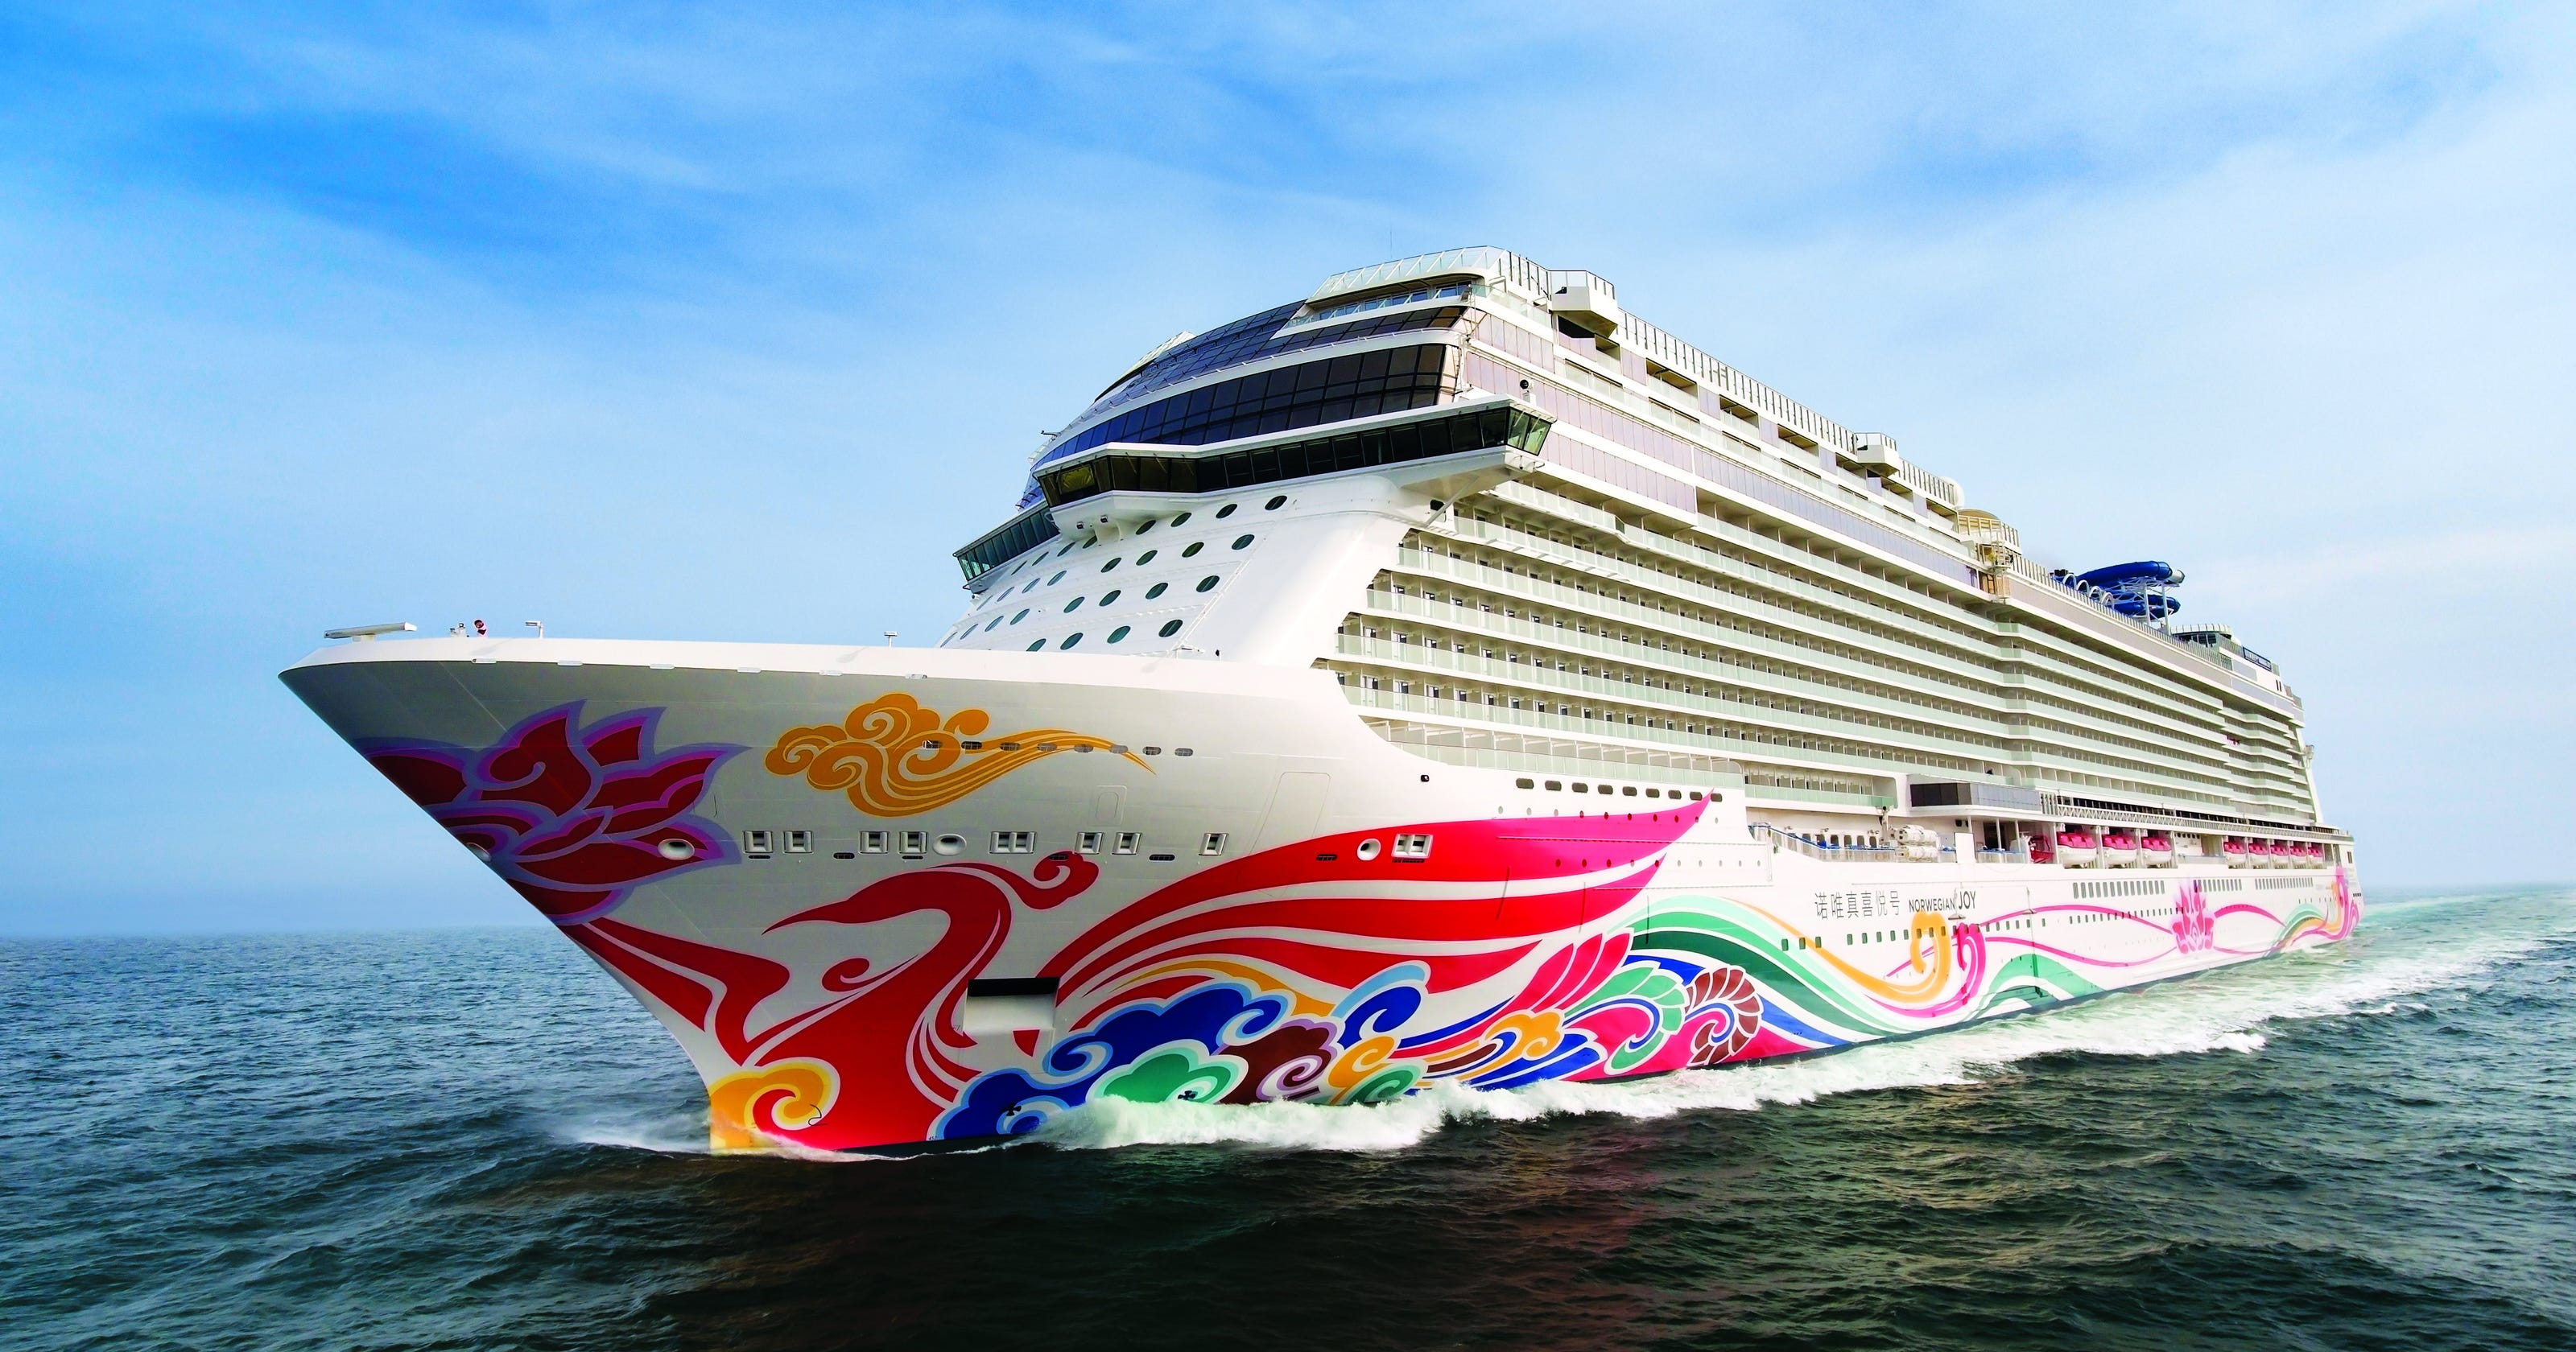 the cruise ship to accommodate the gay lifestyle